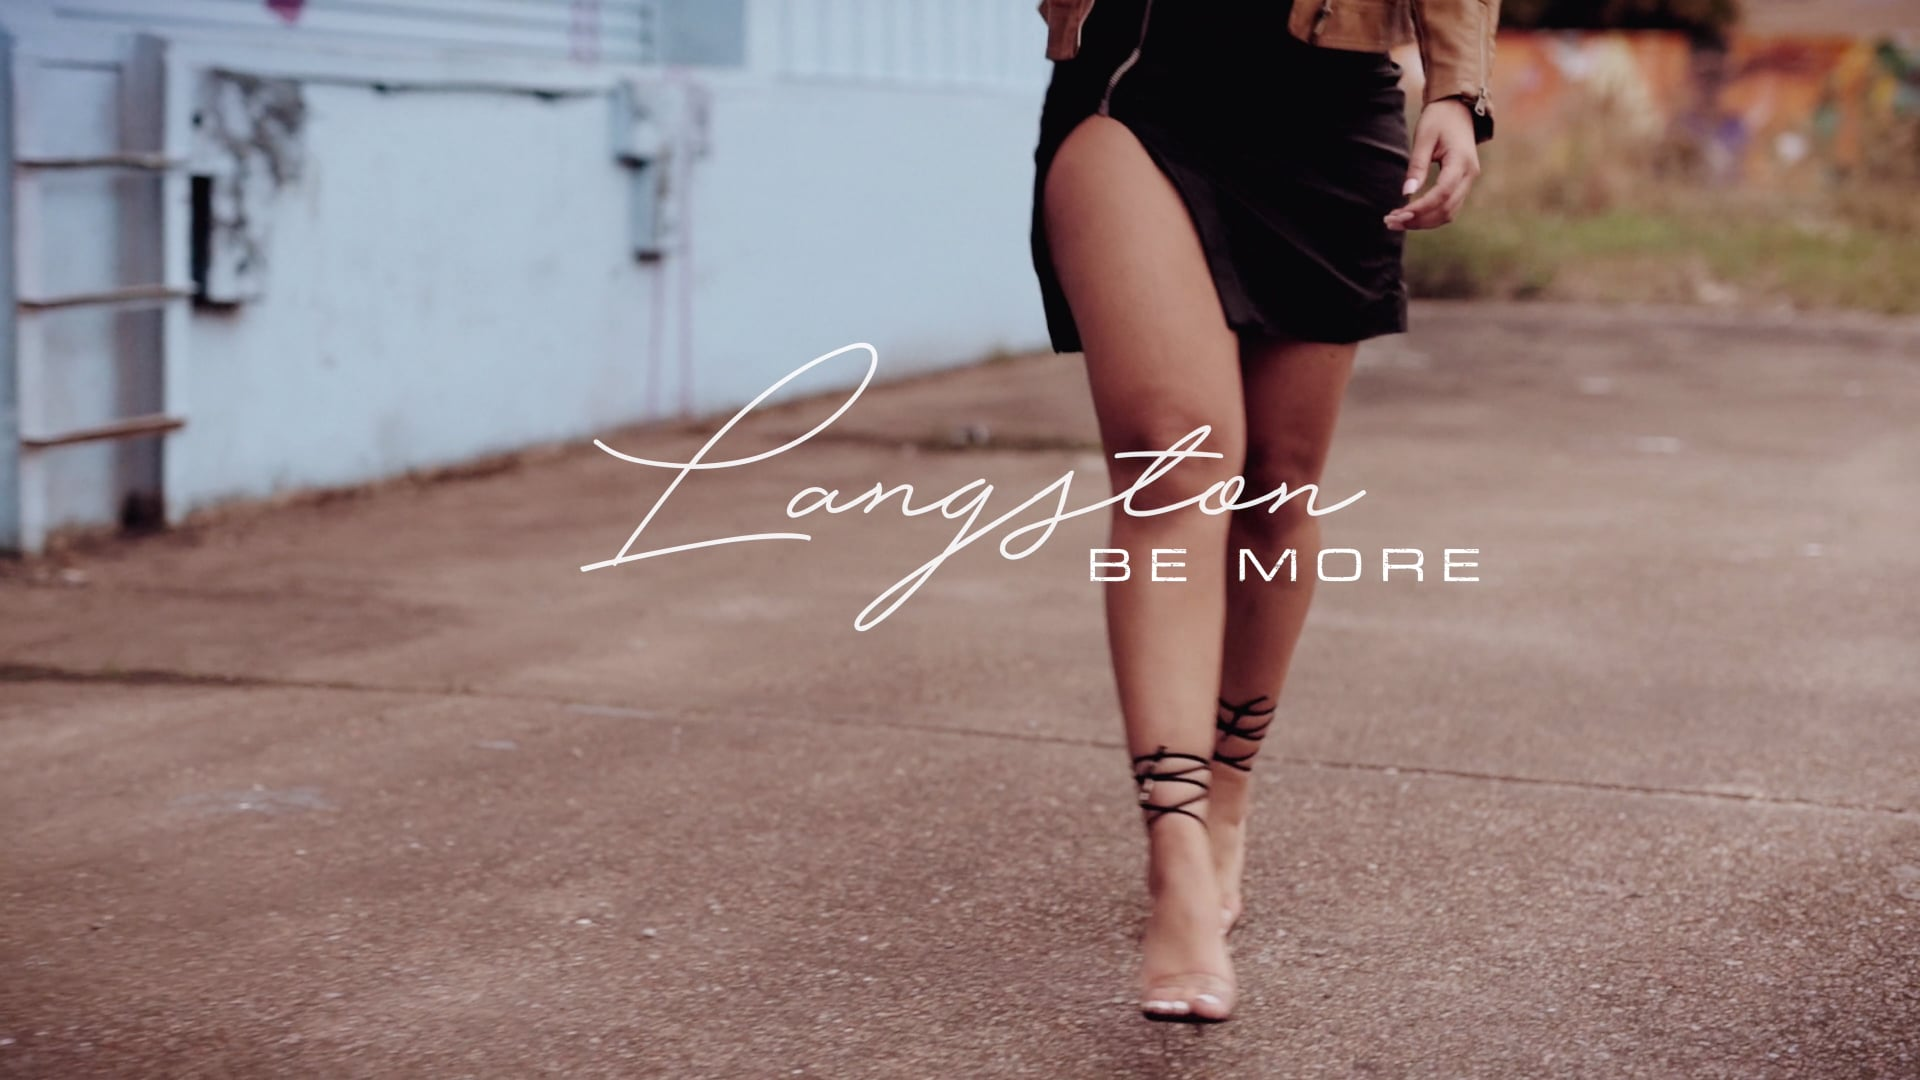 Langston - Be More (Official Video)